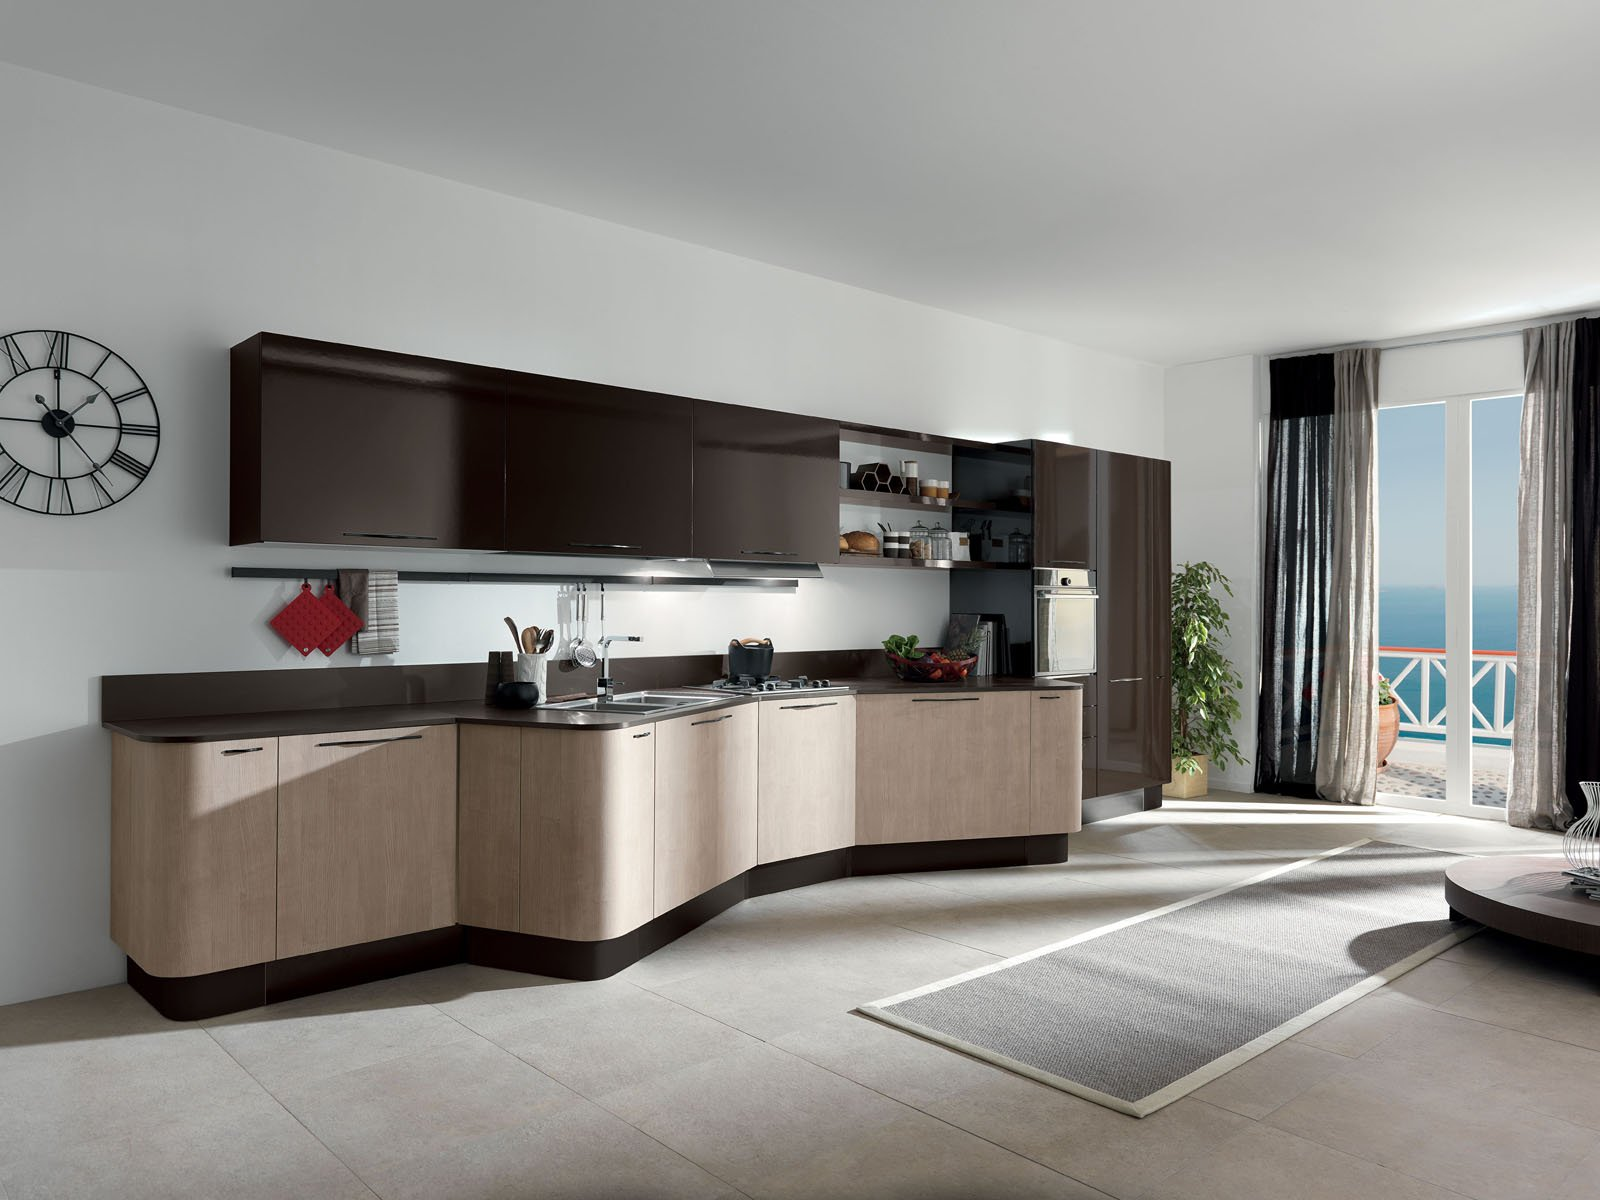 aran 5 cucine per sfruttare lo spazio in modi differenti cose di casa. Black Bedroom Furniture Sets. Home Design Ideas